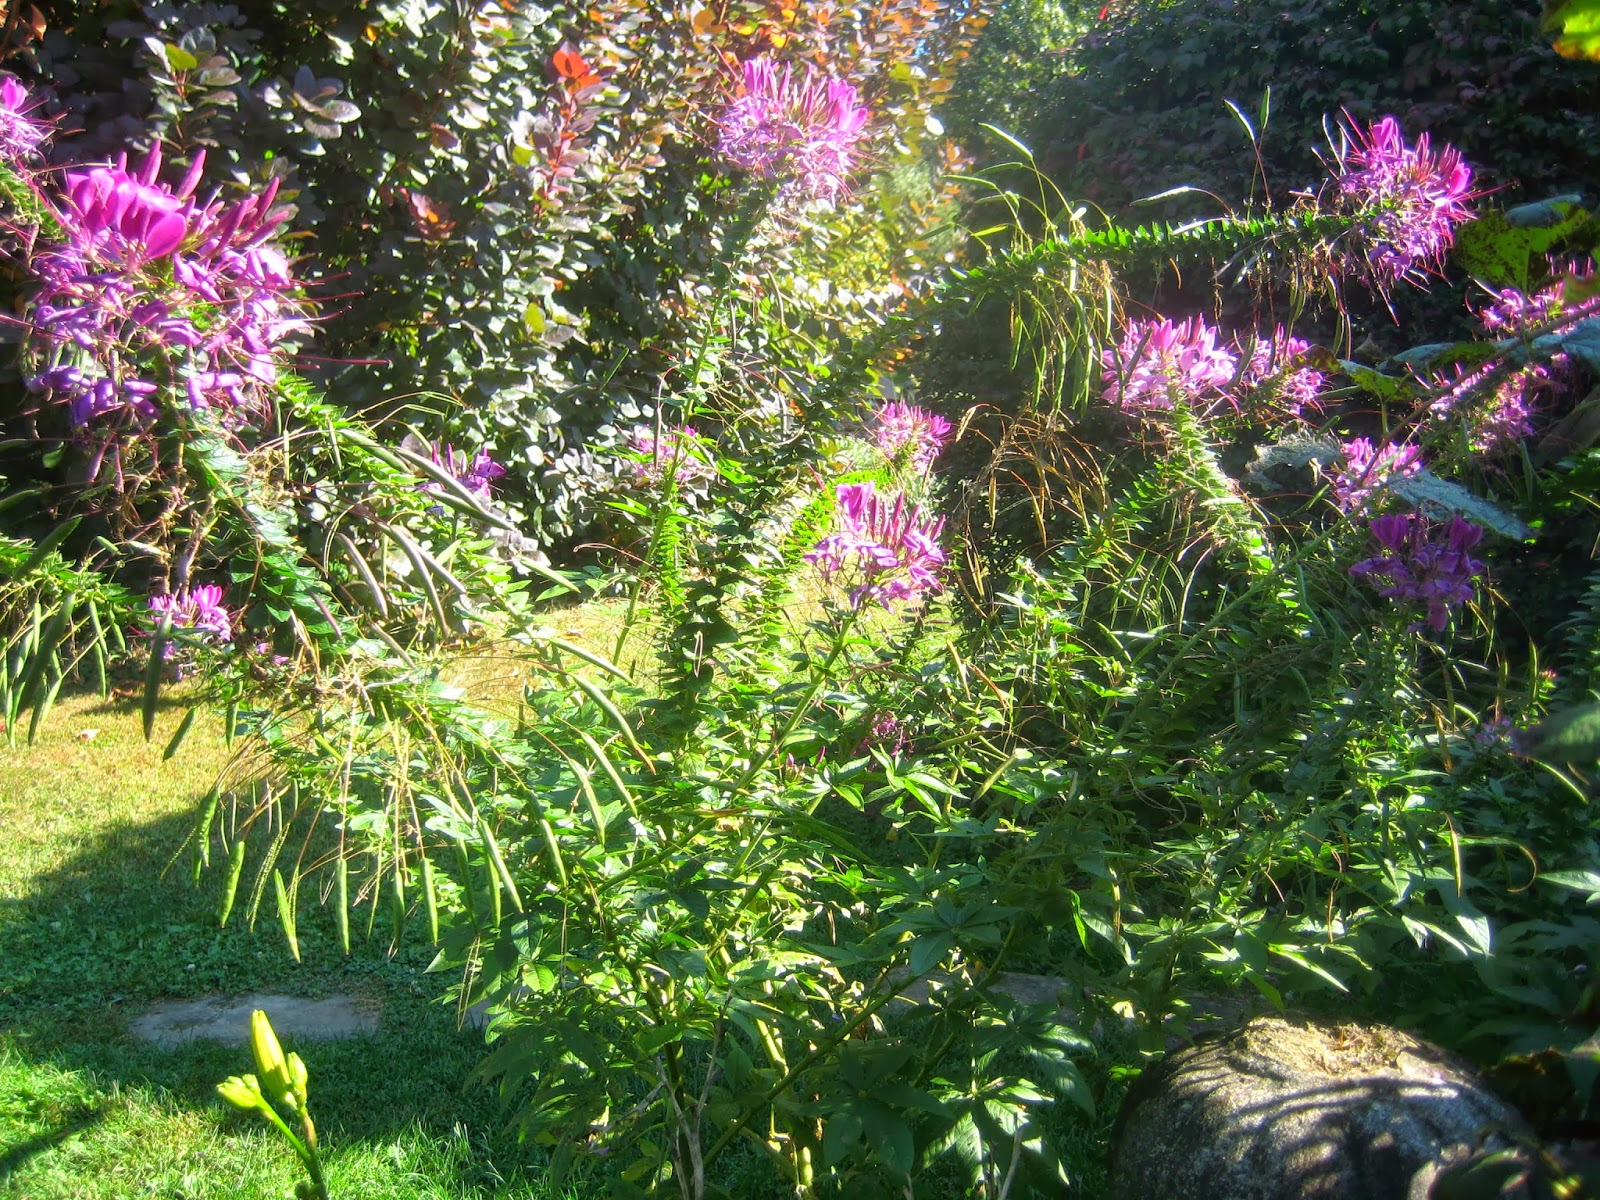 Meadow Muffin Gardens Drought Resistant & Attracts Hummingbirds Plant S